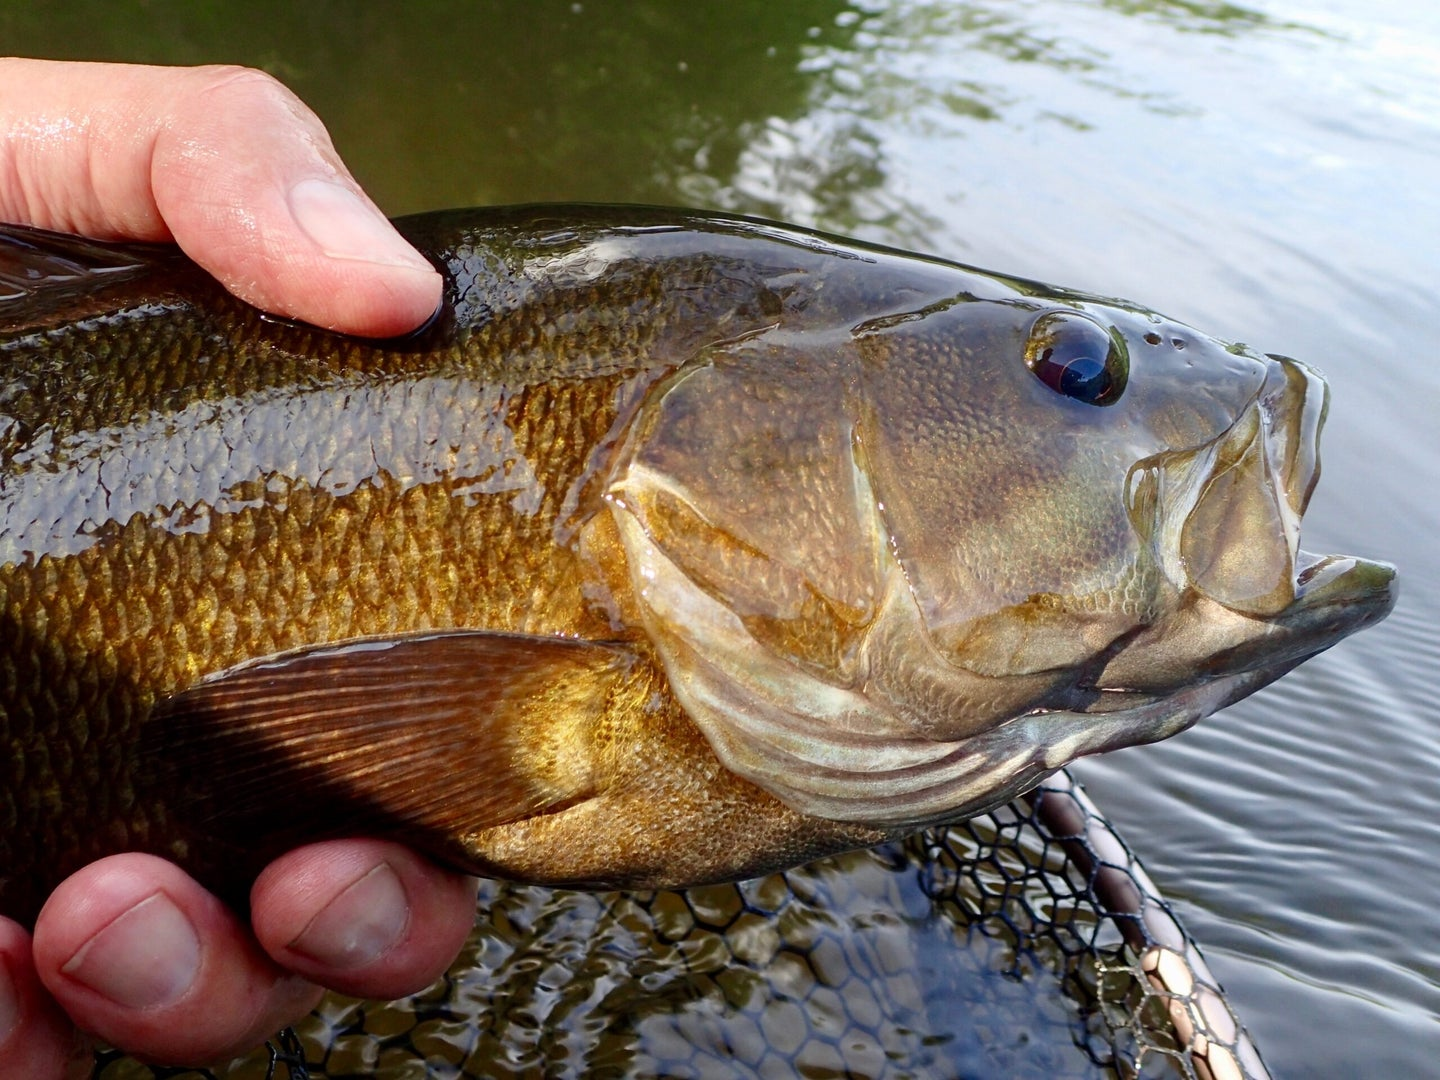 Smallmouth bass in a fisherman's hand next to the water.